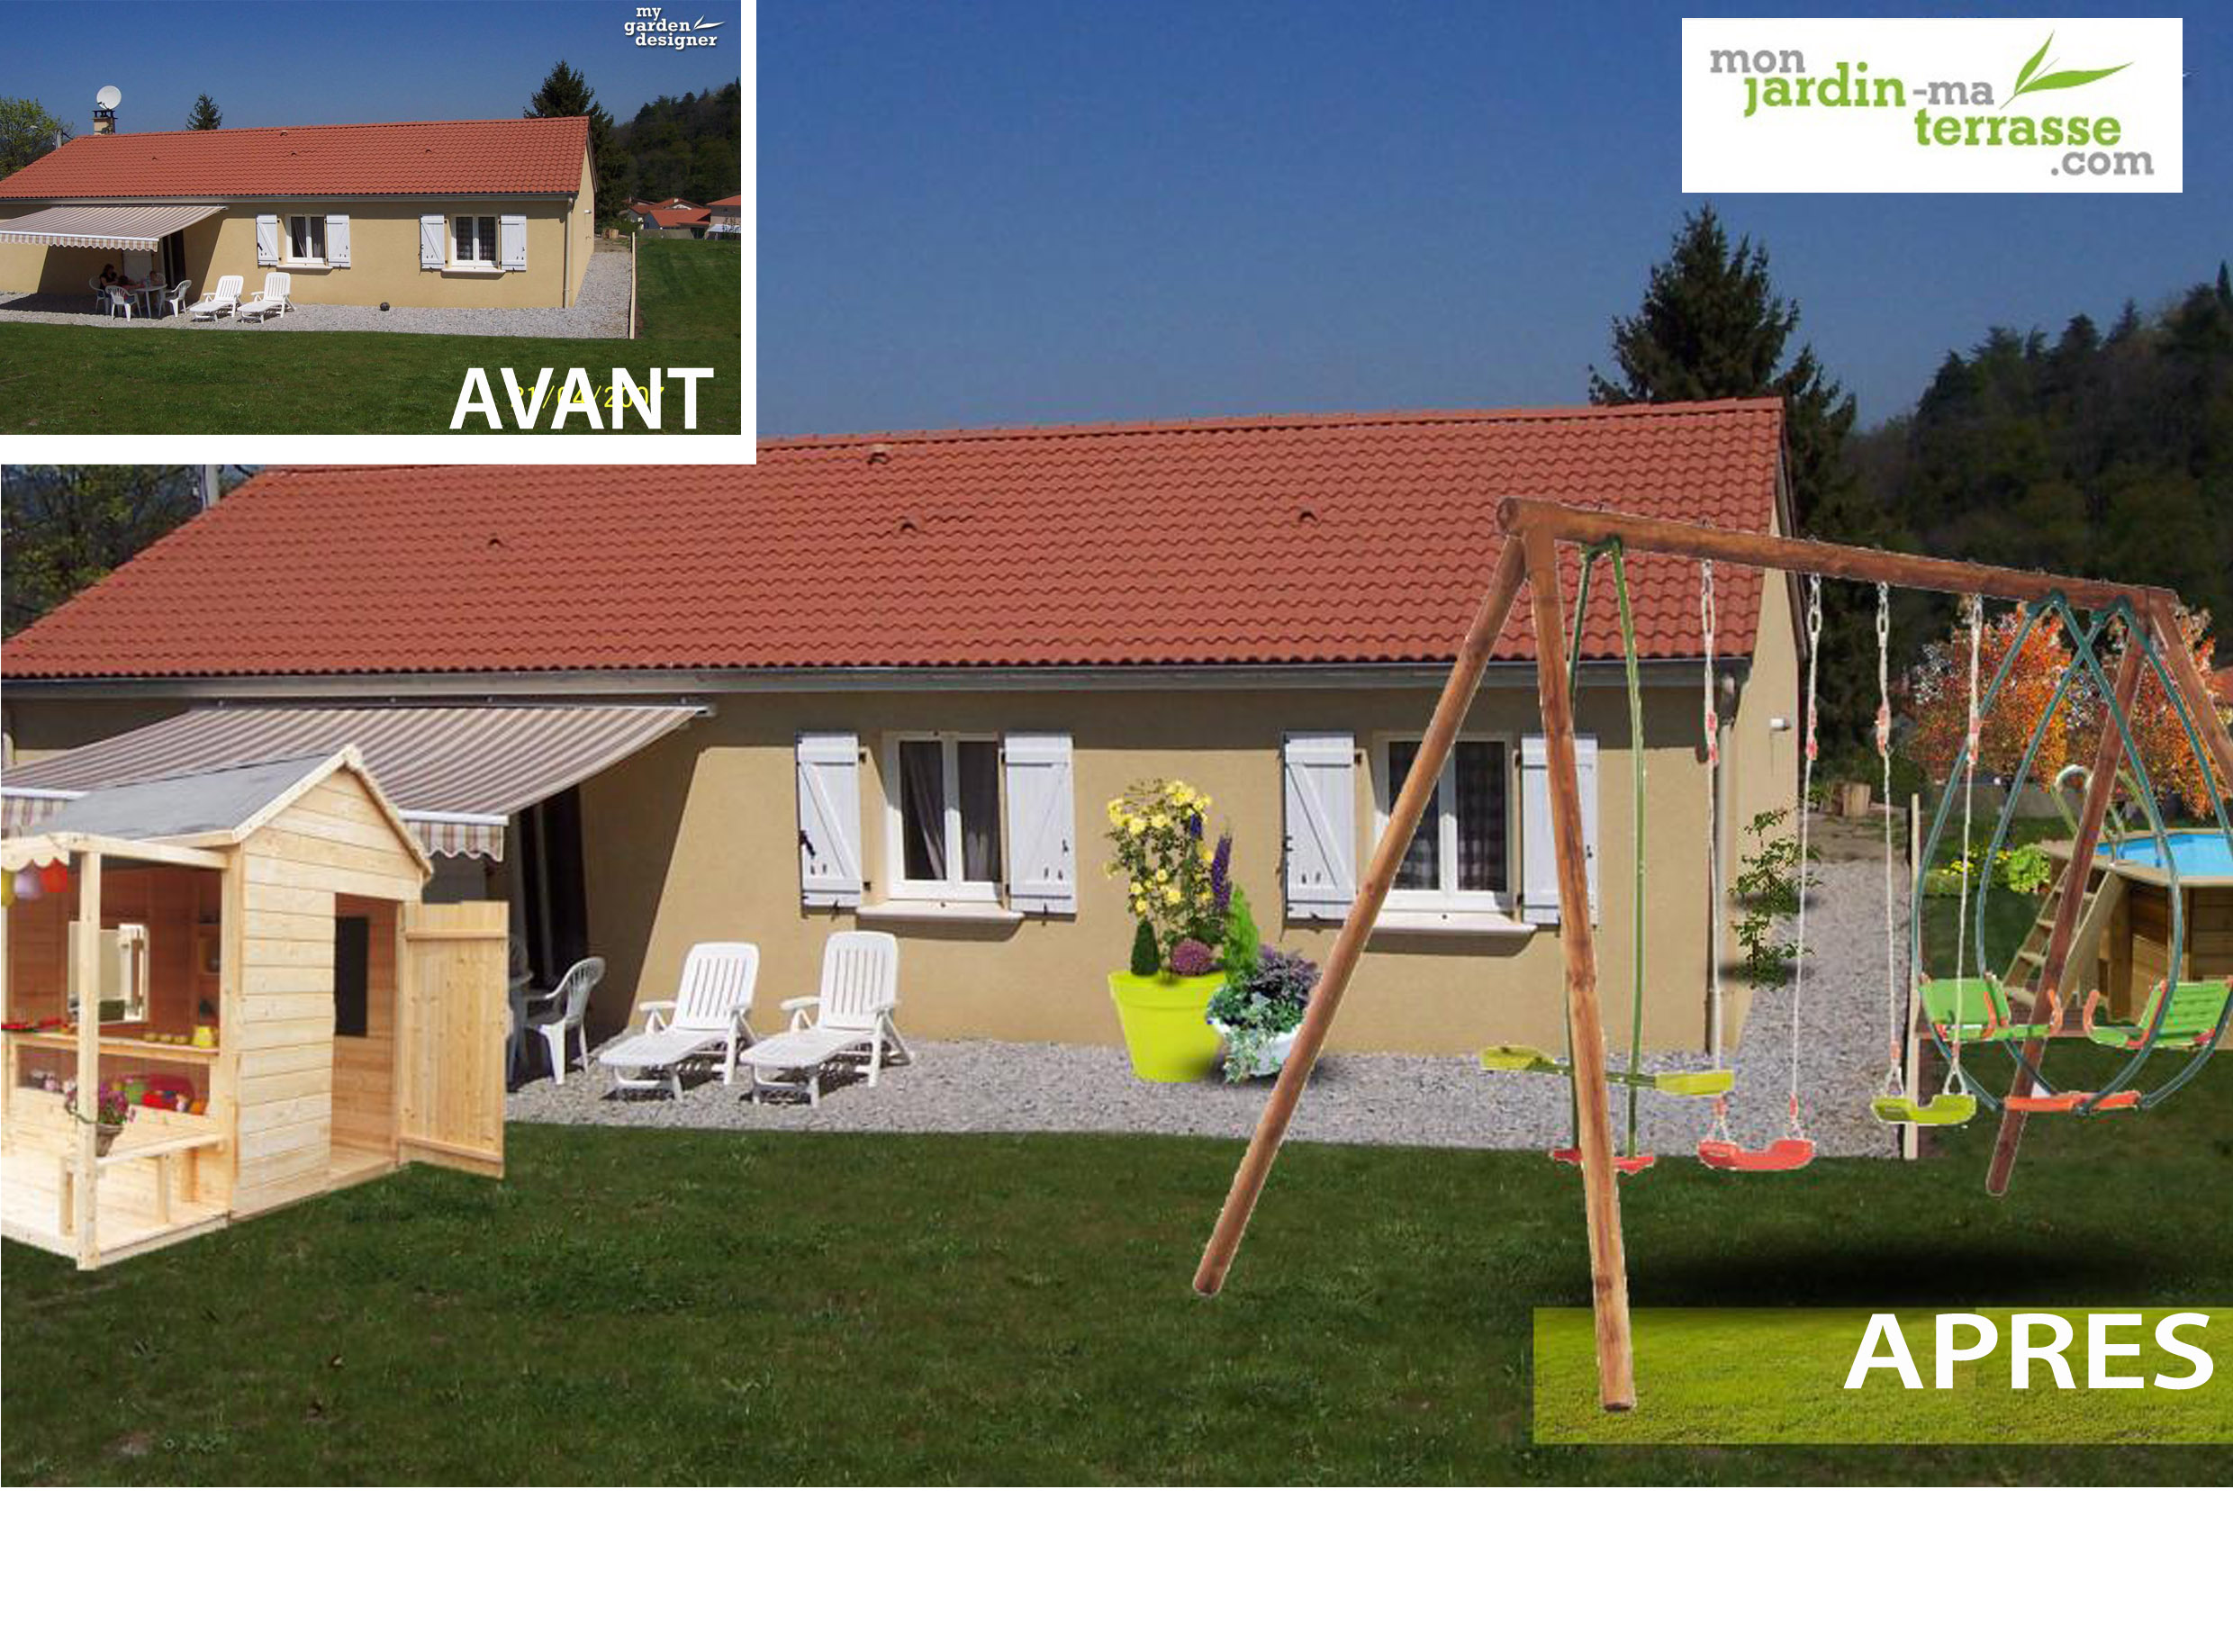 Am nager son jardin pour enfant monjardin for Amenager son jardin en normandie